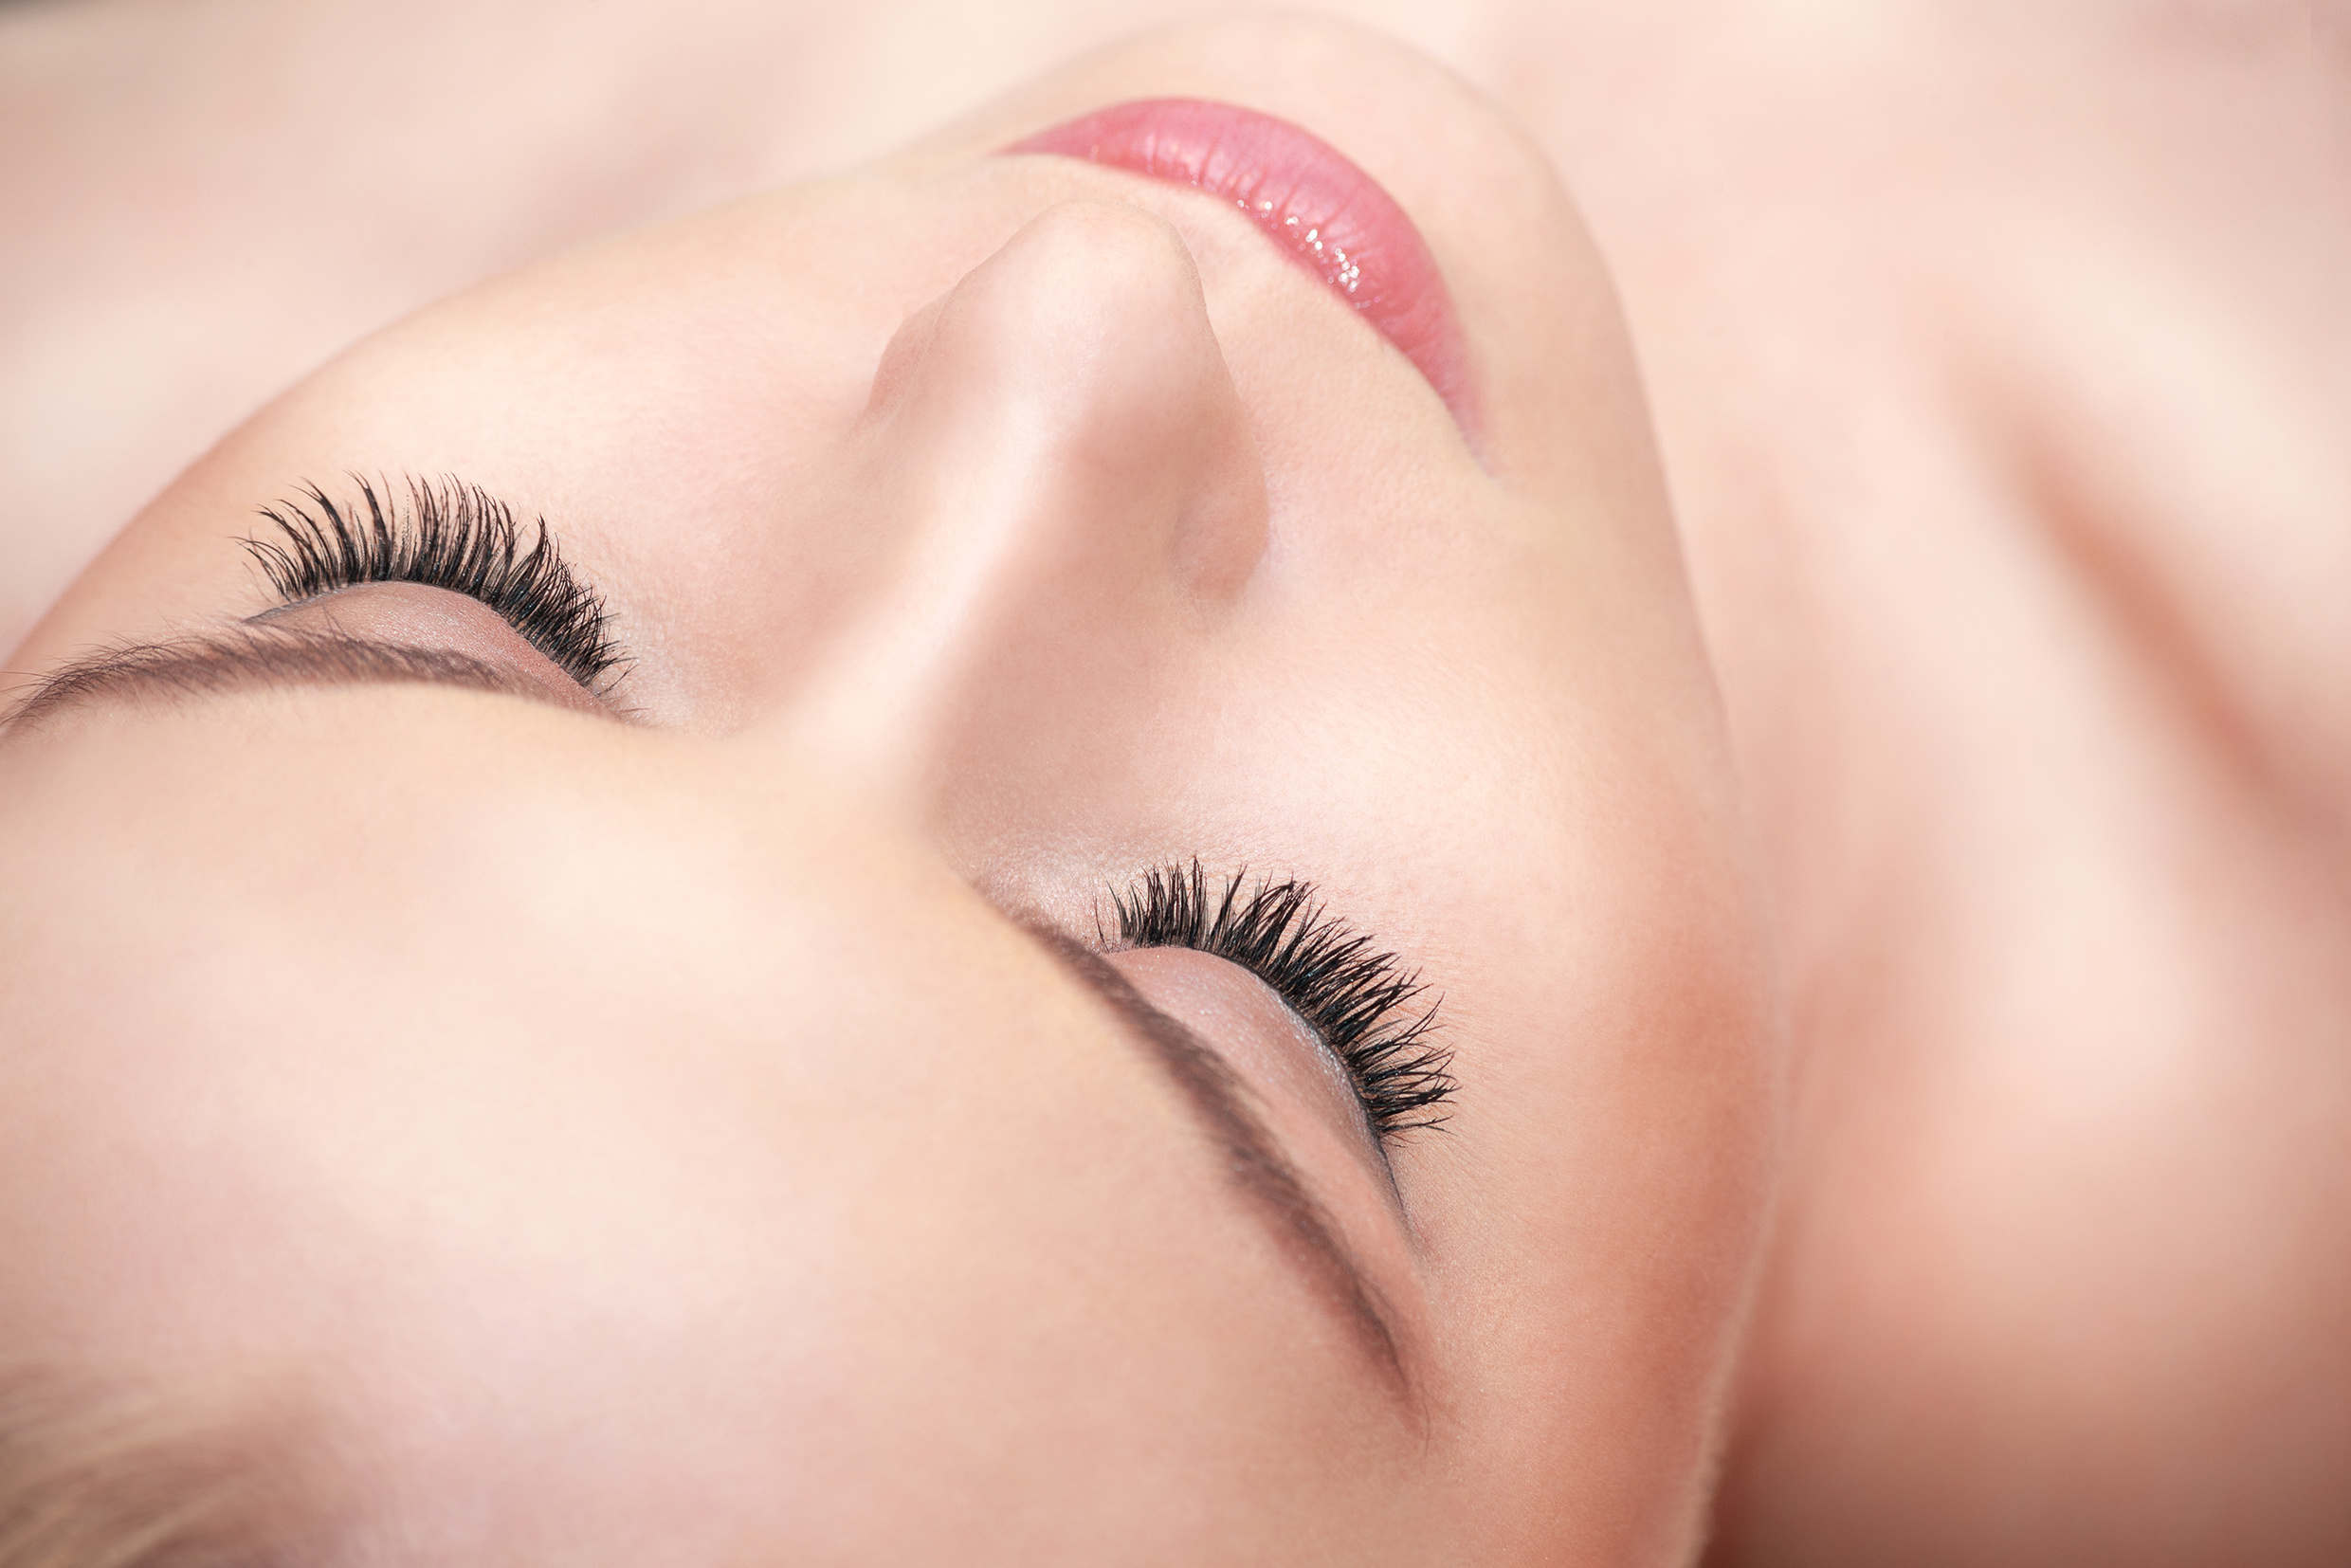 Lying attractive woman eyes with long eyelashes.